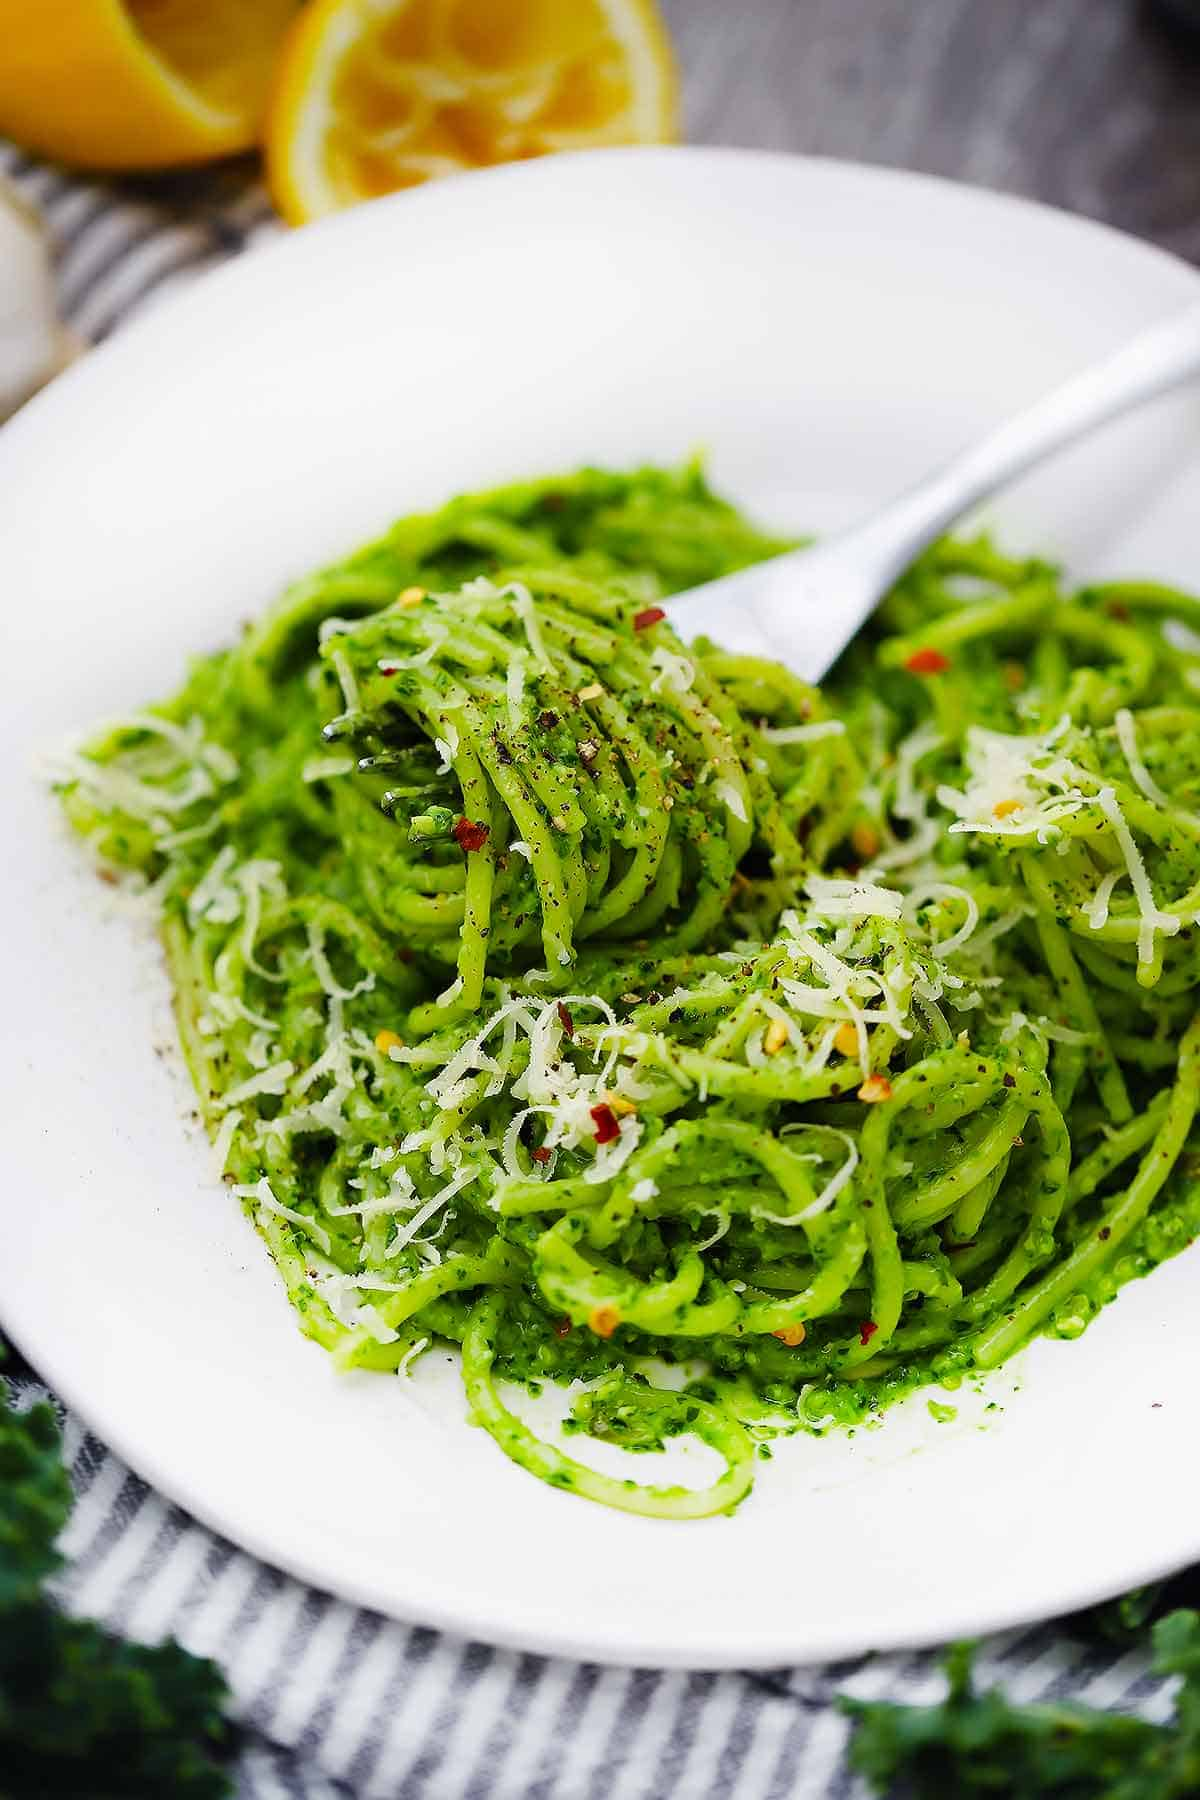 Kale pest on spaghetti on a white plate being twirled with a fork.